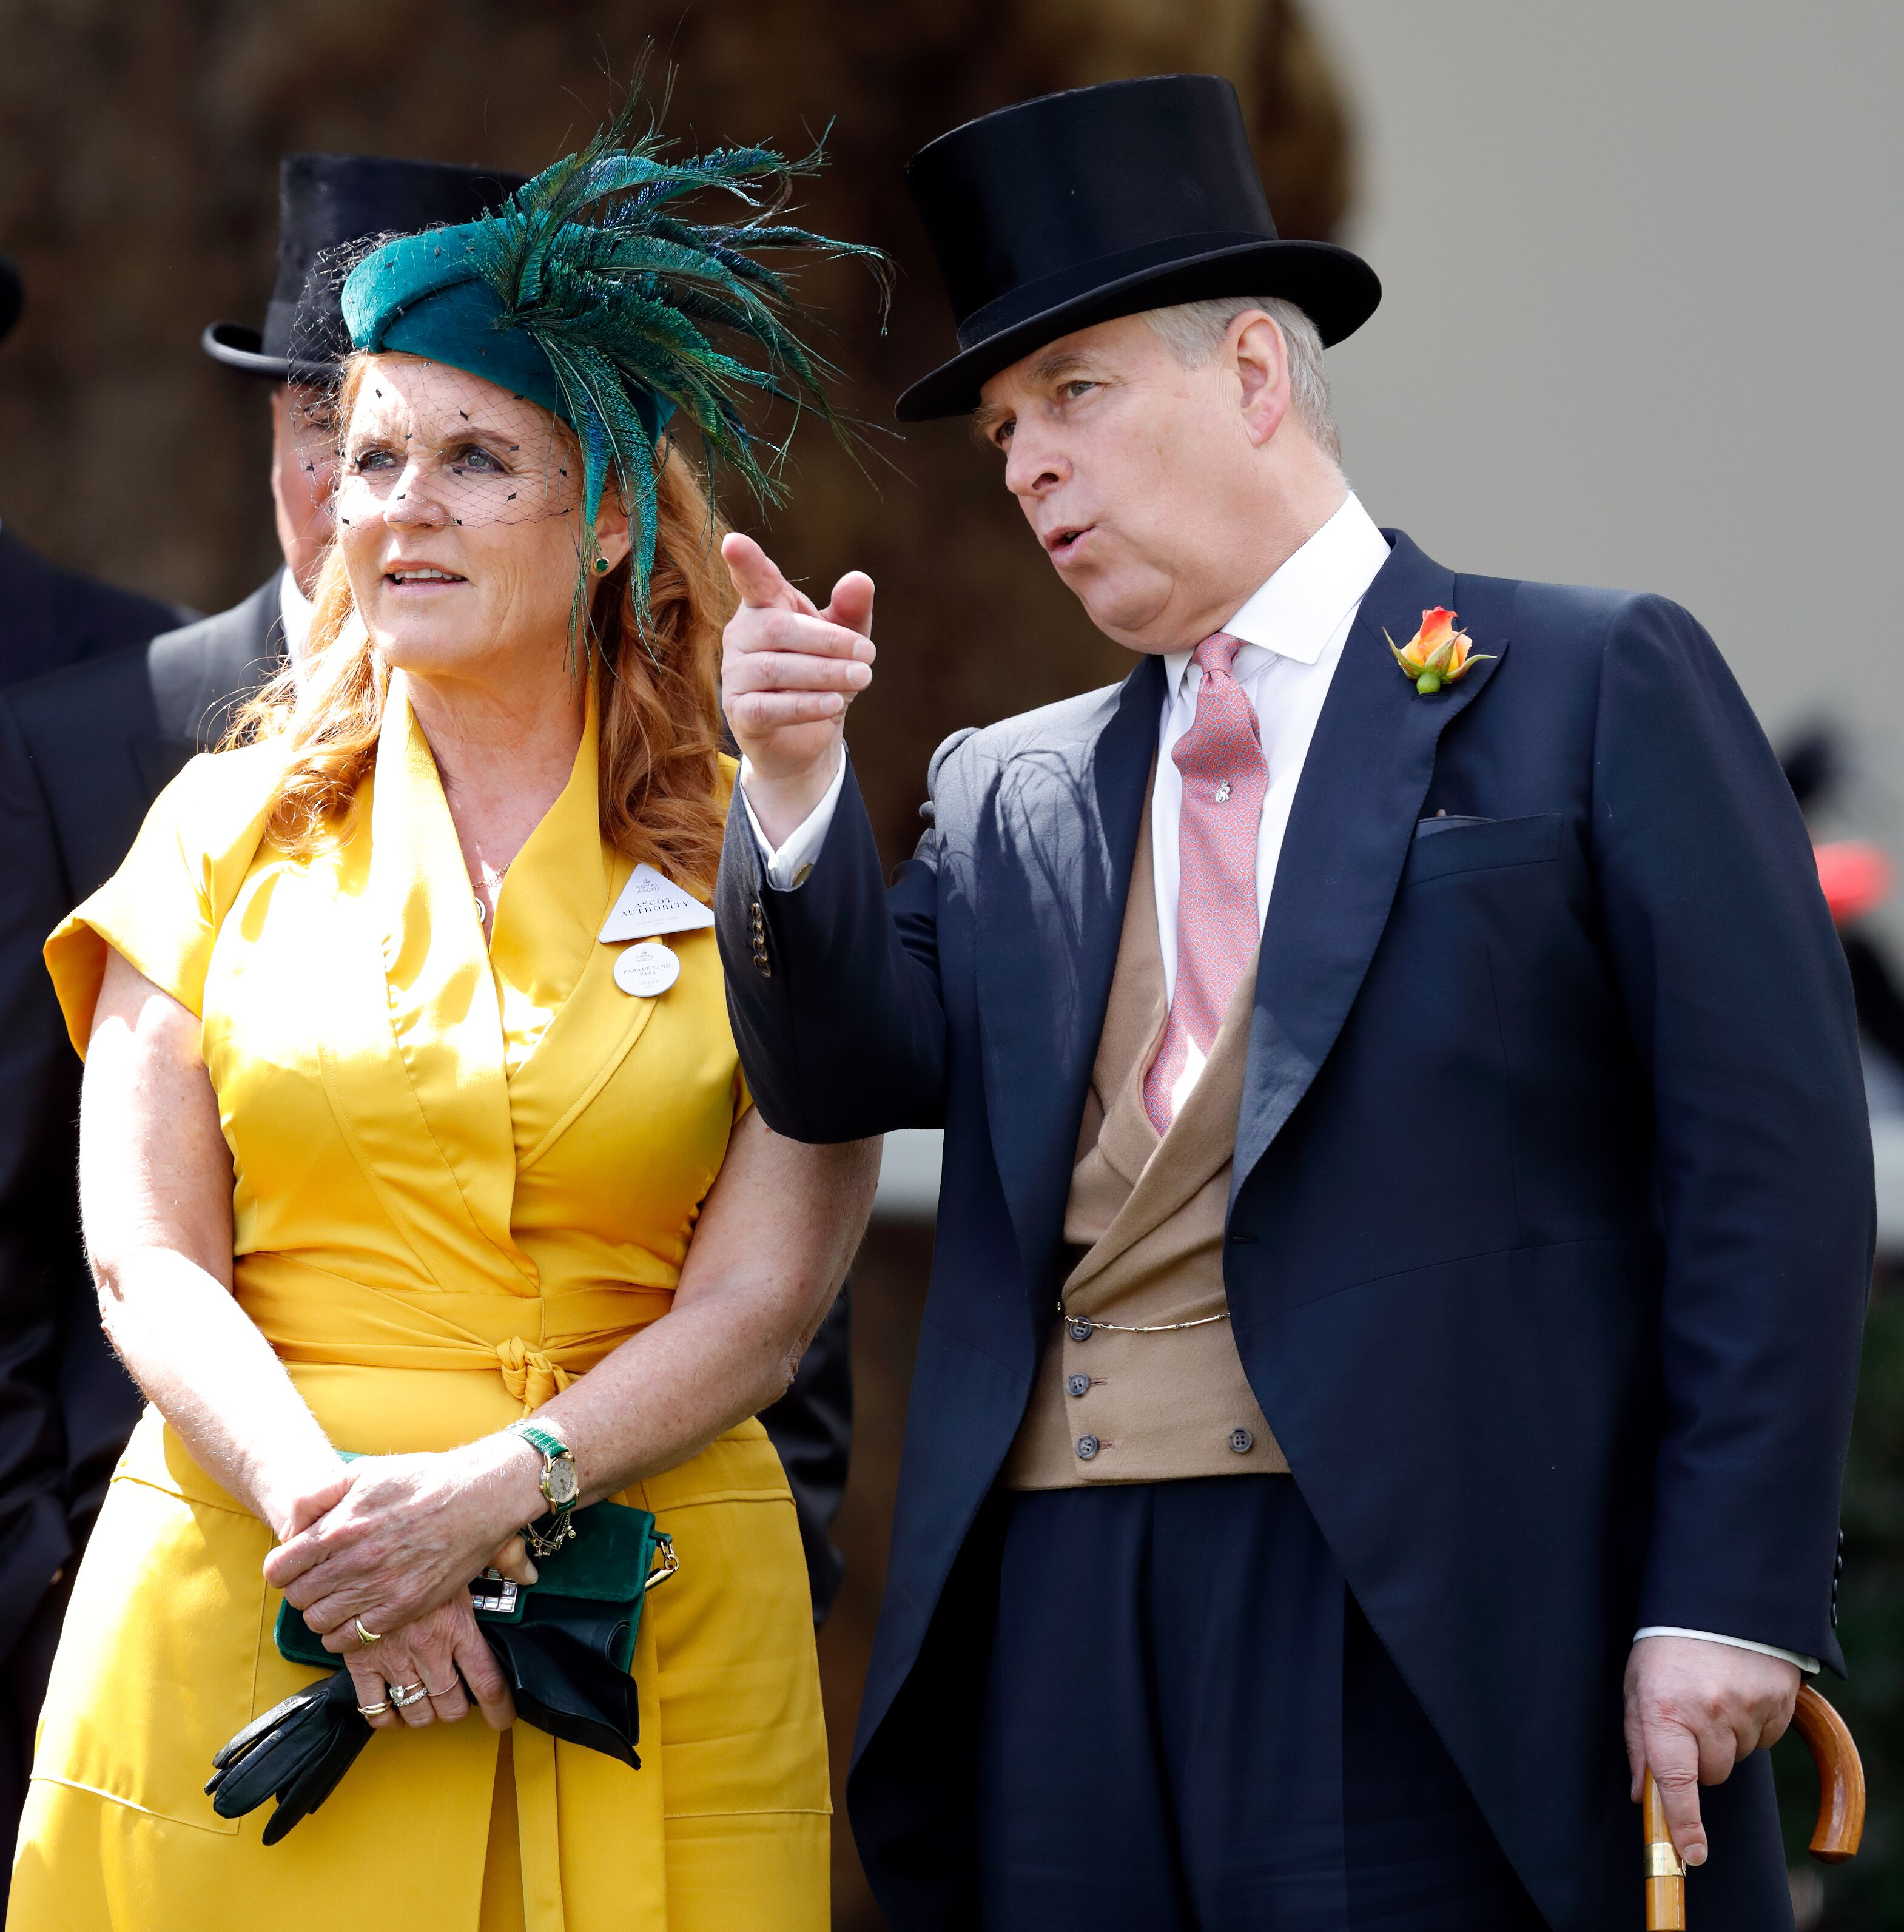 Sarah Ferguson, Duchess of York and Prince Andrew, Duke of York attend day four of Royal Ascot at Ascot Racecourse on June 21, 2019 in Ascot, England | Photo: Getty Images